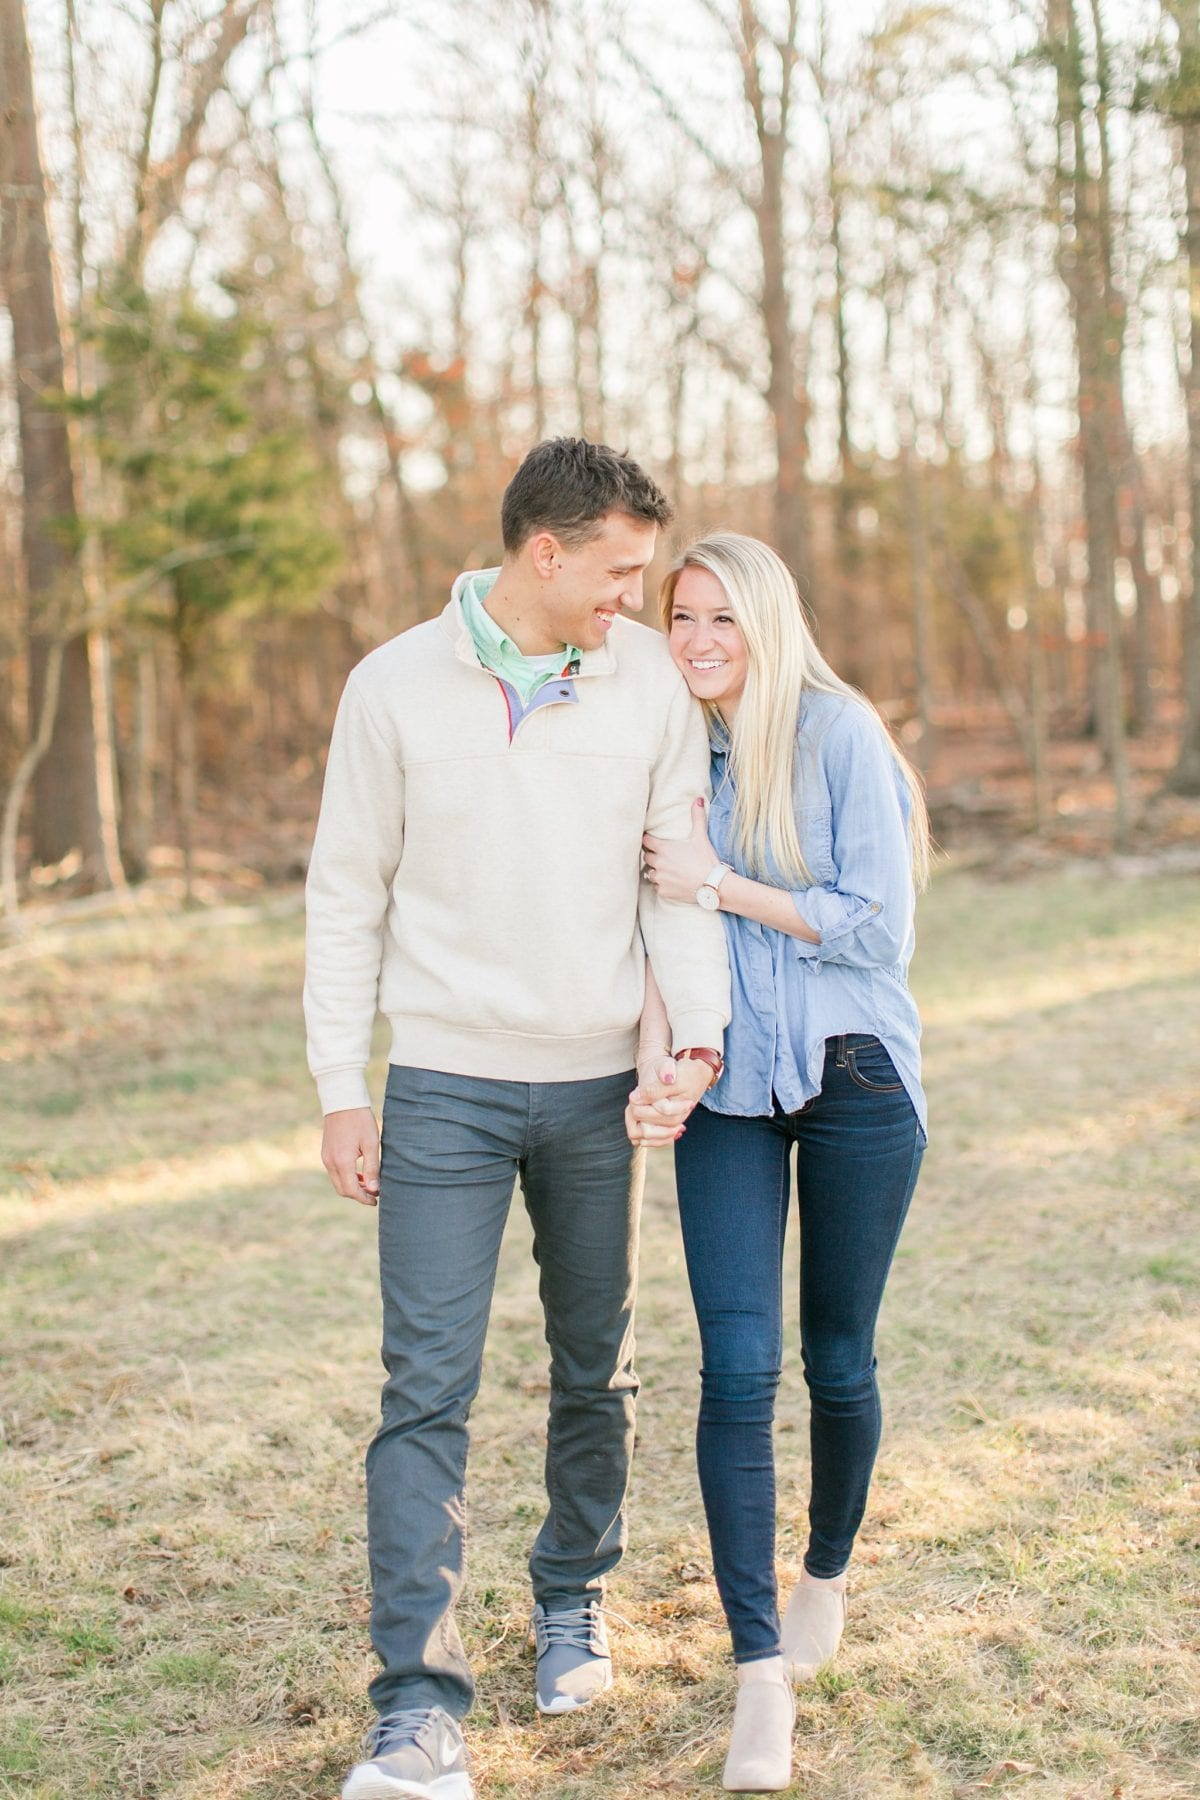 Manassas Battlefield Engagement Session Virginia Wedding Photographer Danielle & Charlie Megan Kelsey Photography-5181.jpg